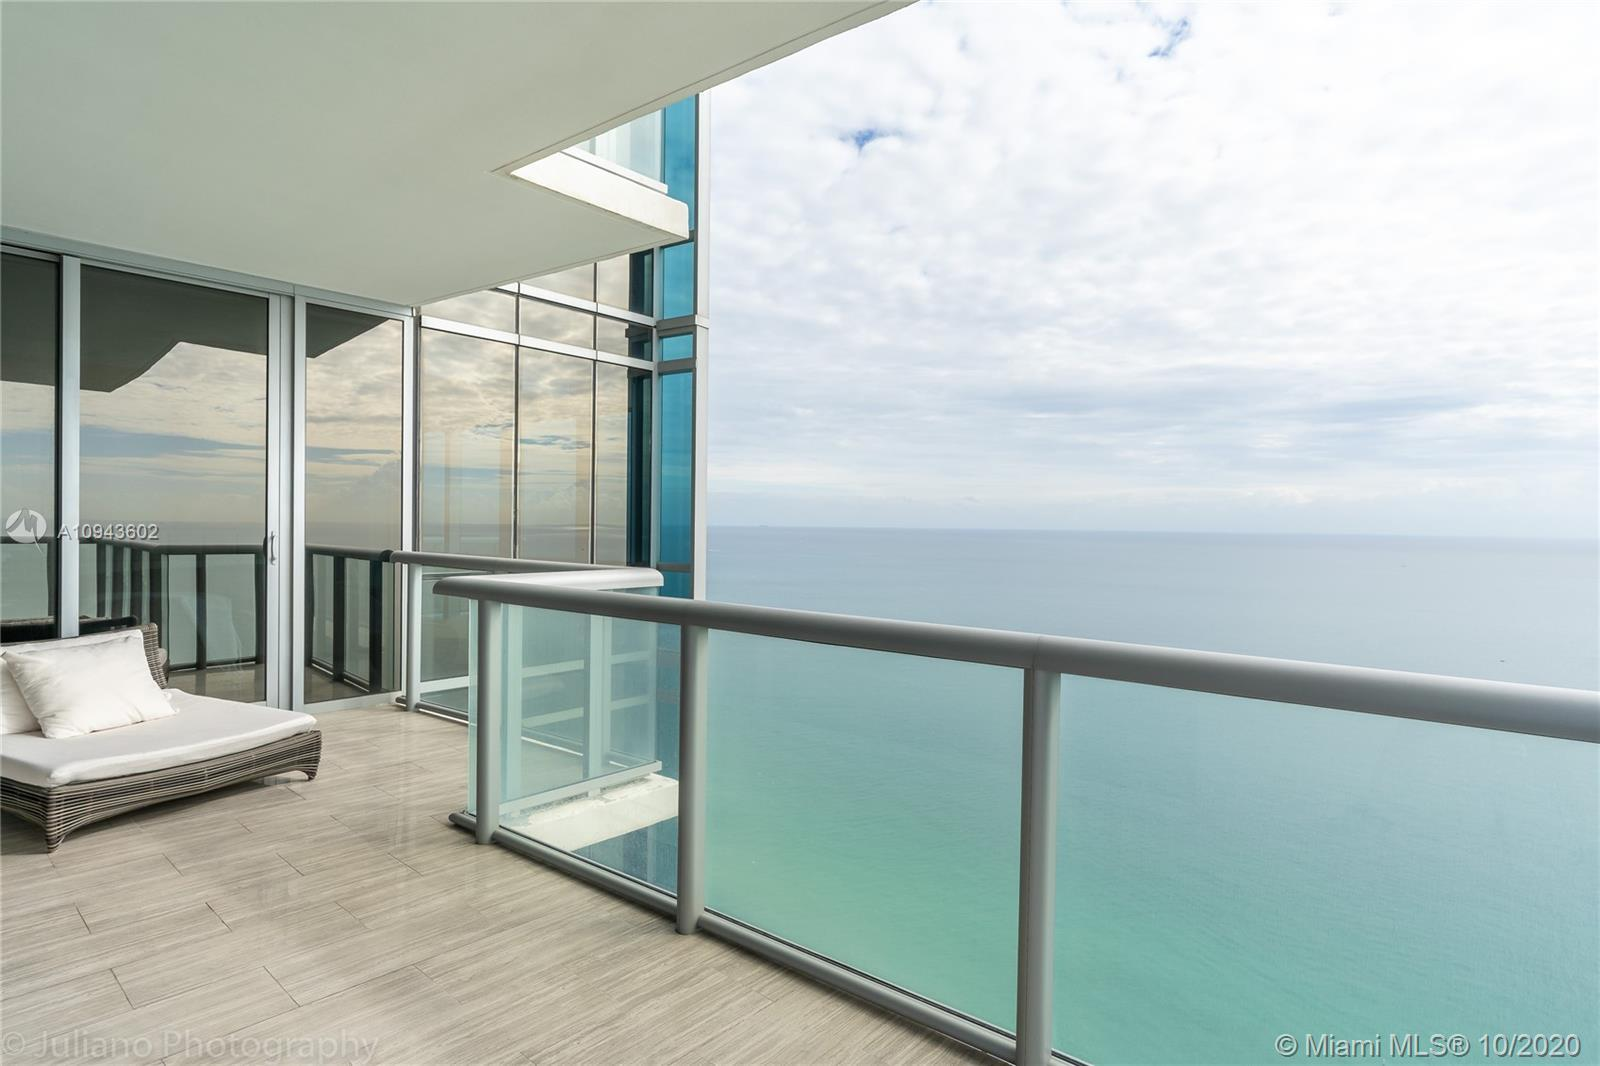 Breathtaking Direct Ocean and city views. This is a definite must see the unit at the spectacular Ja